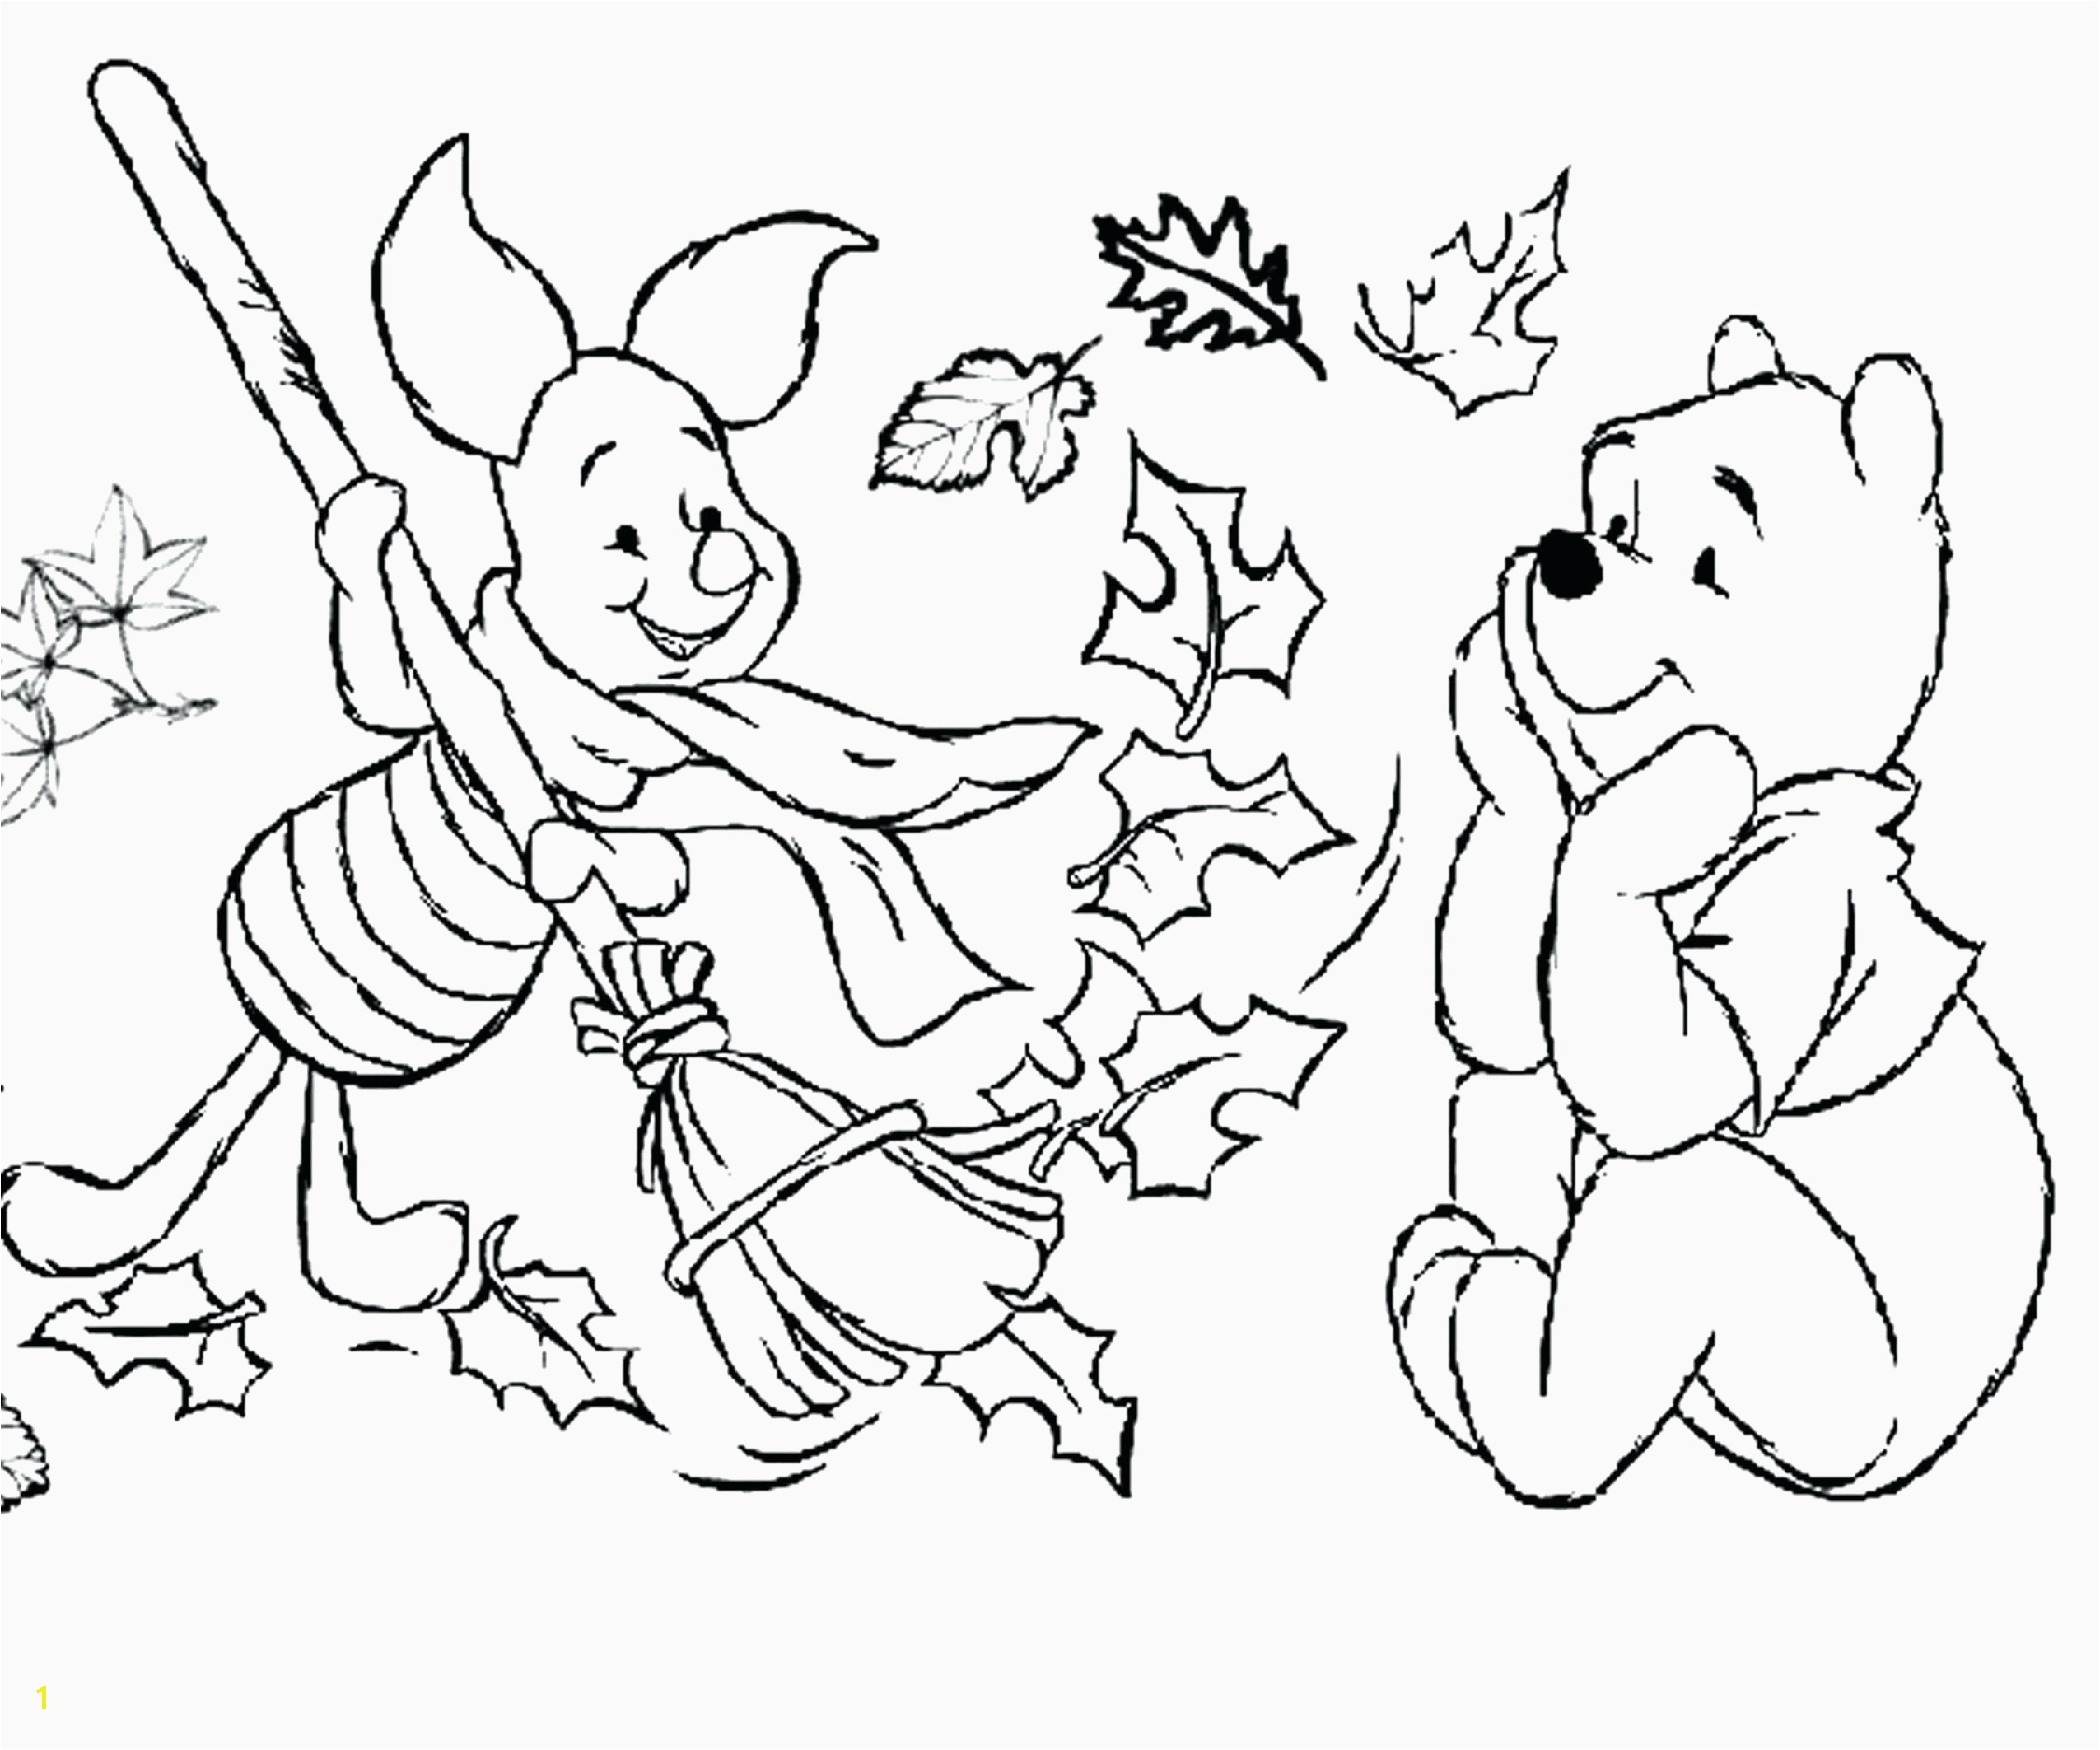 Penguin Coloring Pages For Kids Coloring Pages For Fall Printable With Free And 30aa 0d